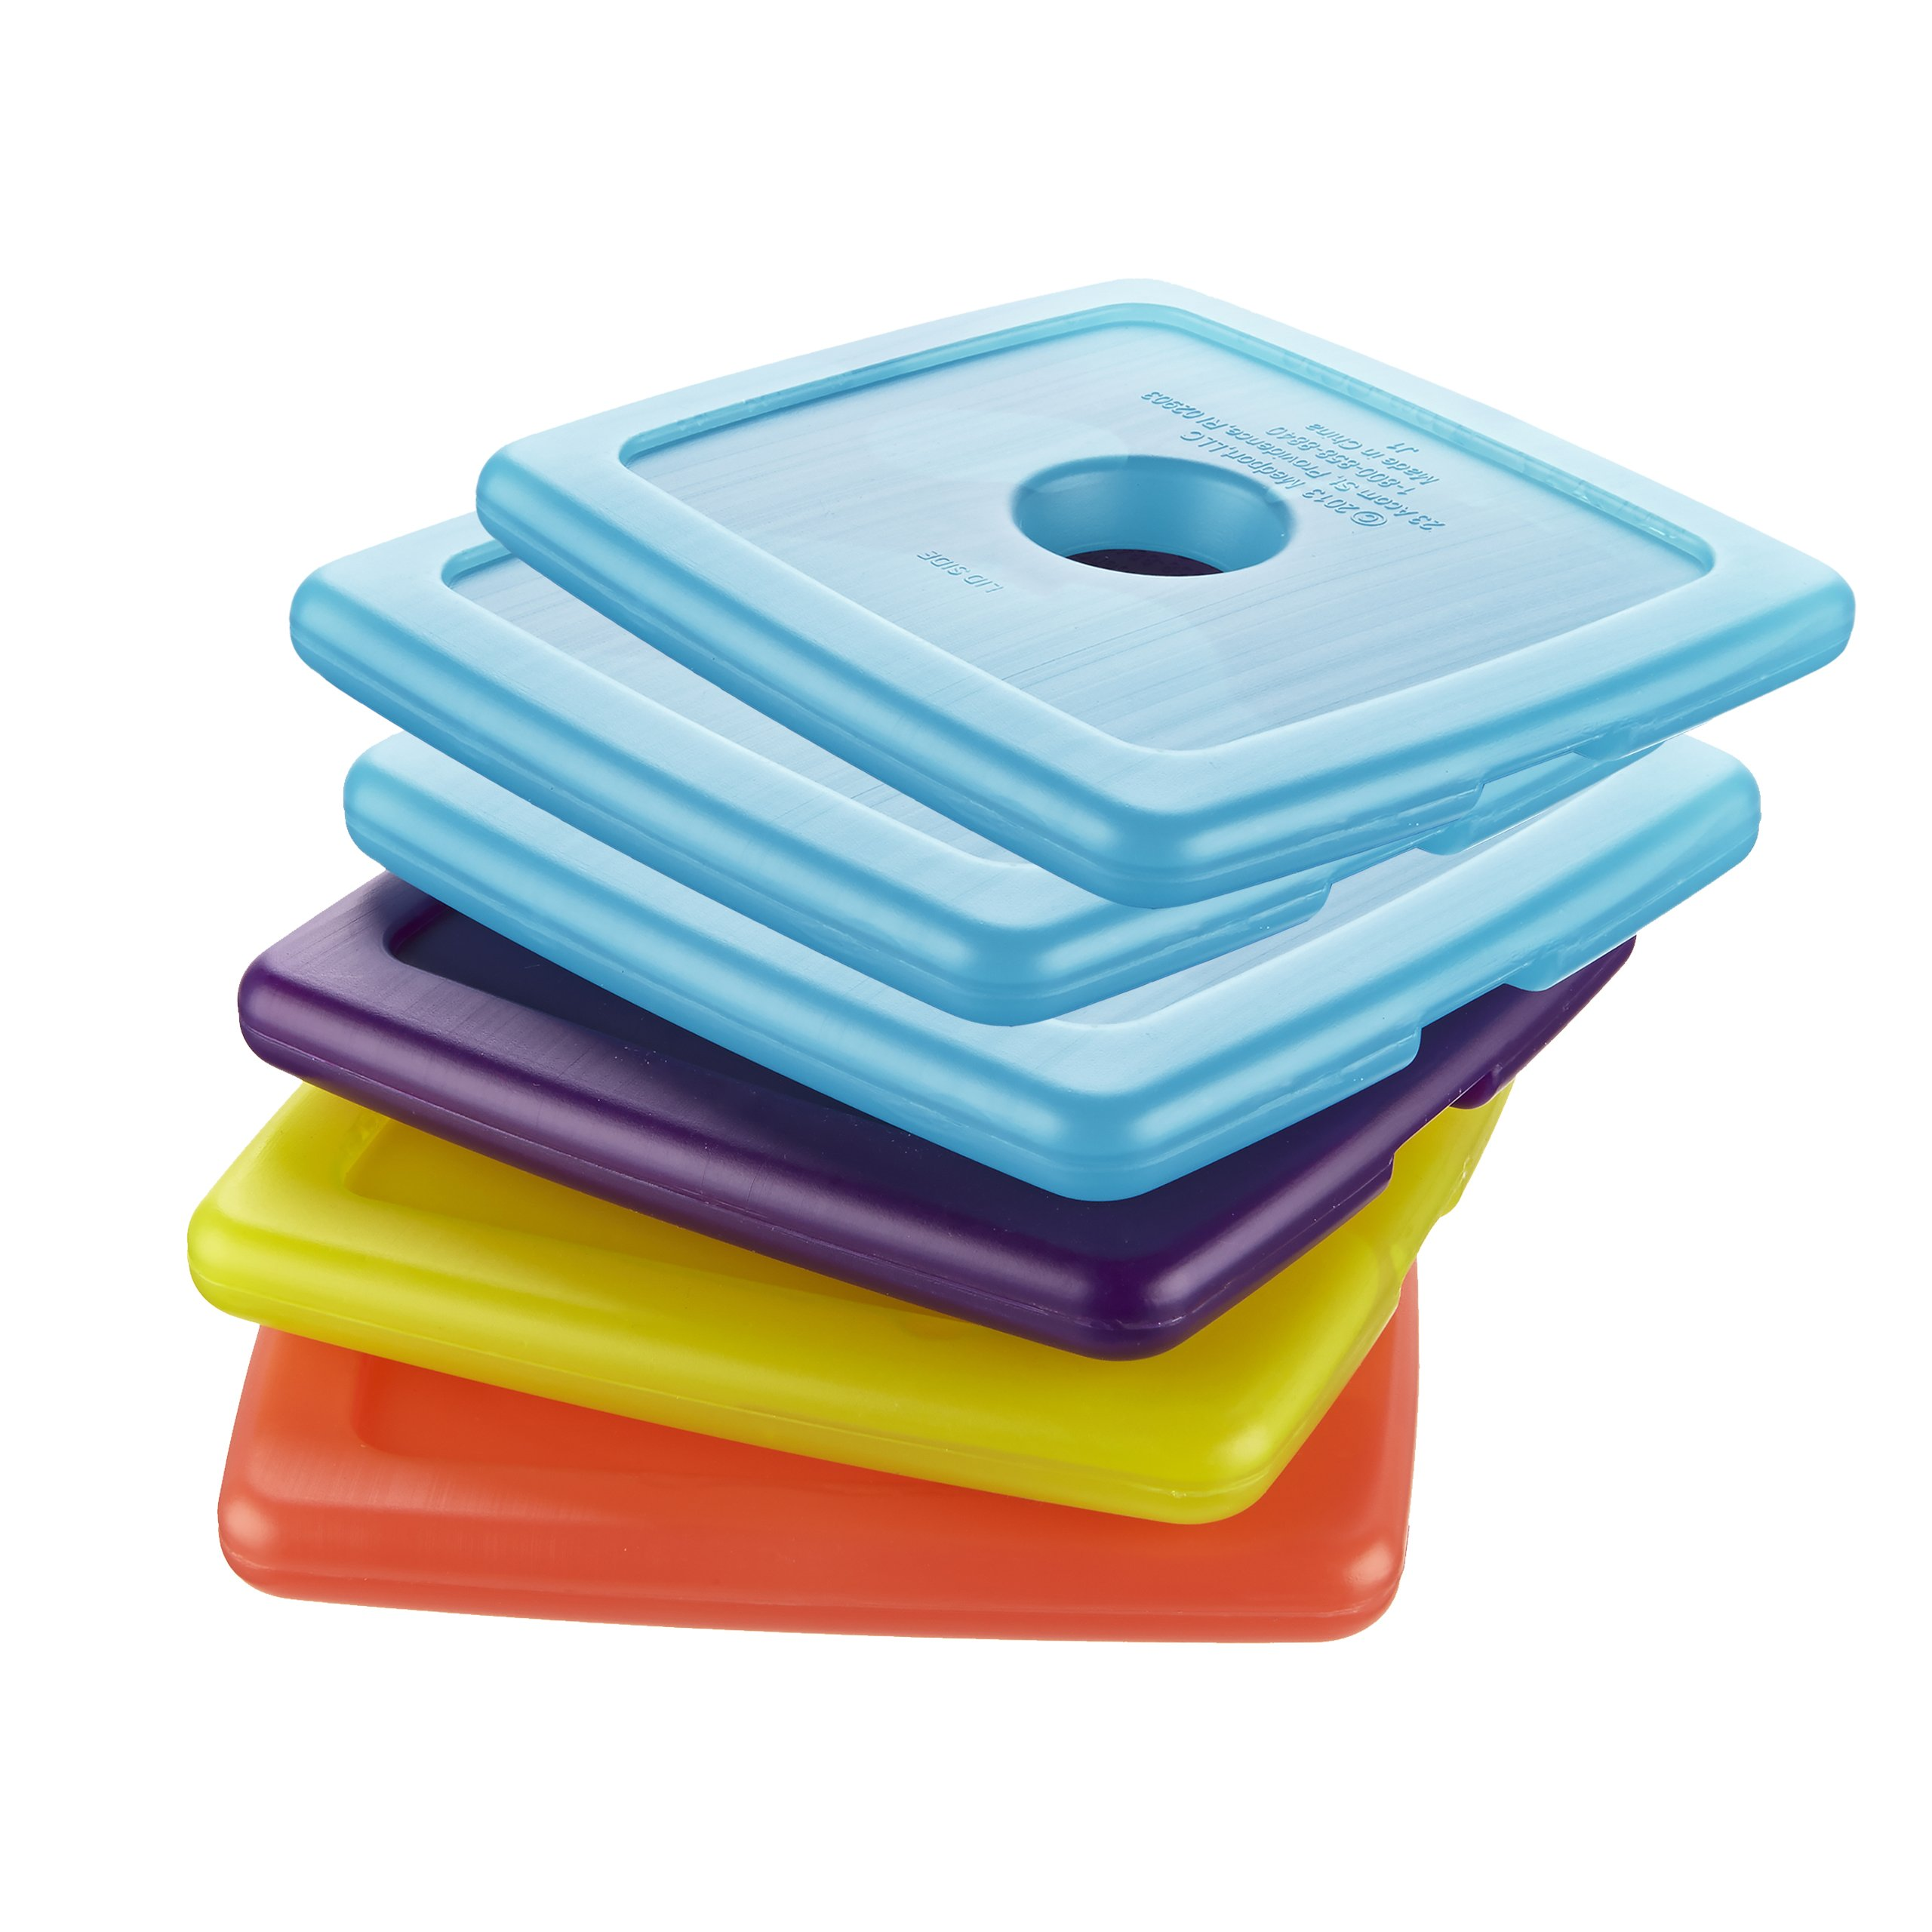 Fit & Fresh Cool Coolers Slim Reusable Ice Packs for Lunch Boxes, Lunch Bags and Coolers, Set of 6, Multicolored by Fit & Fresh